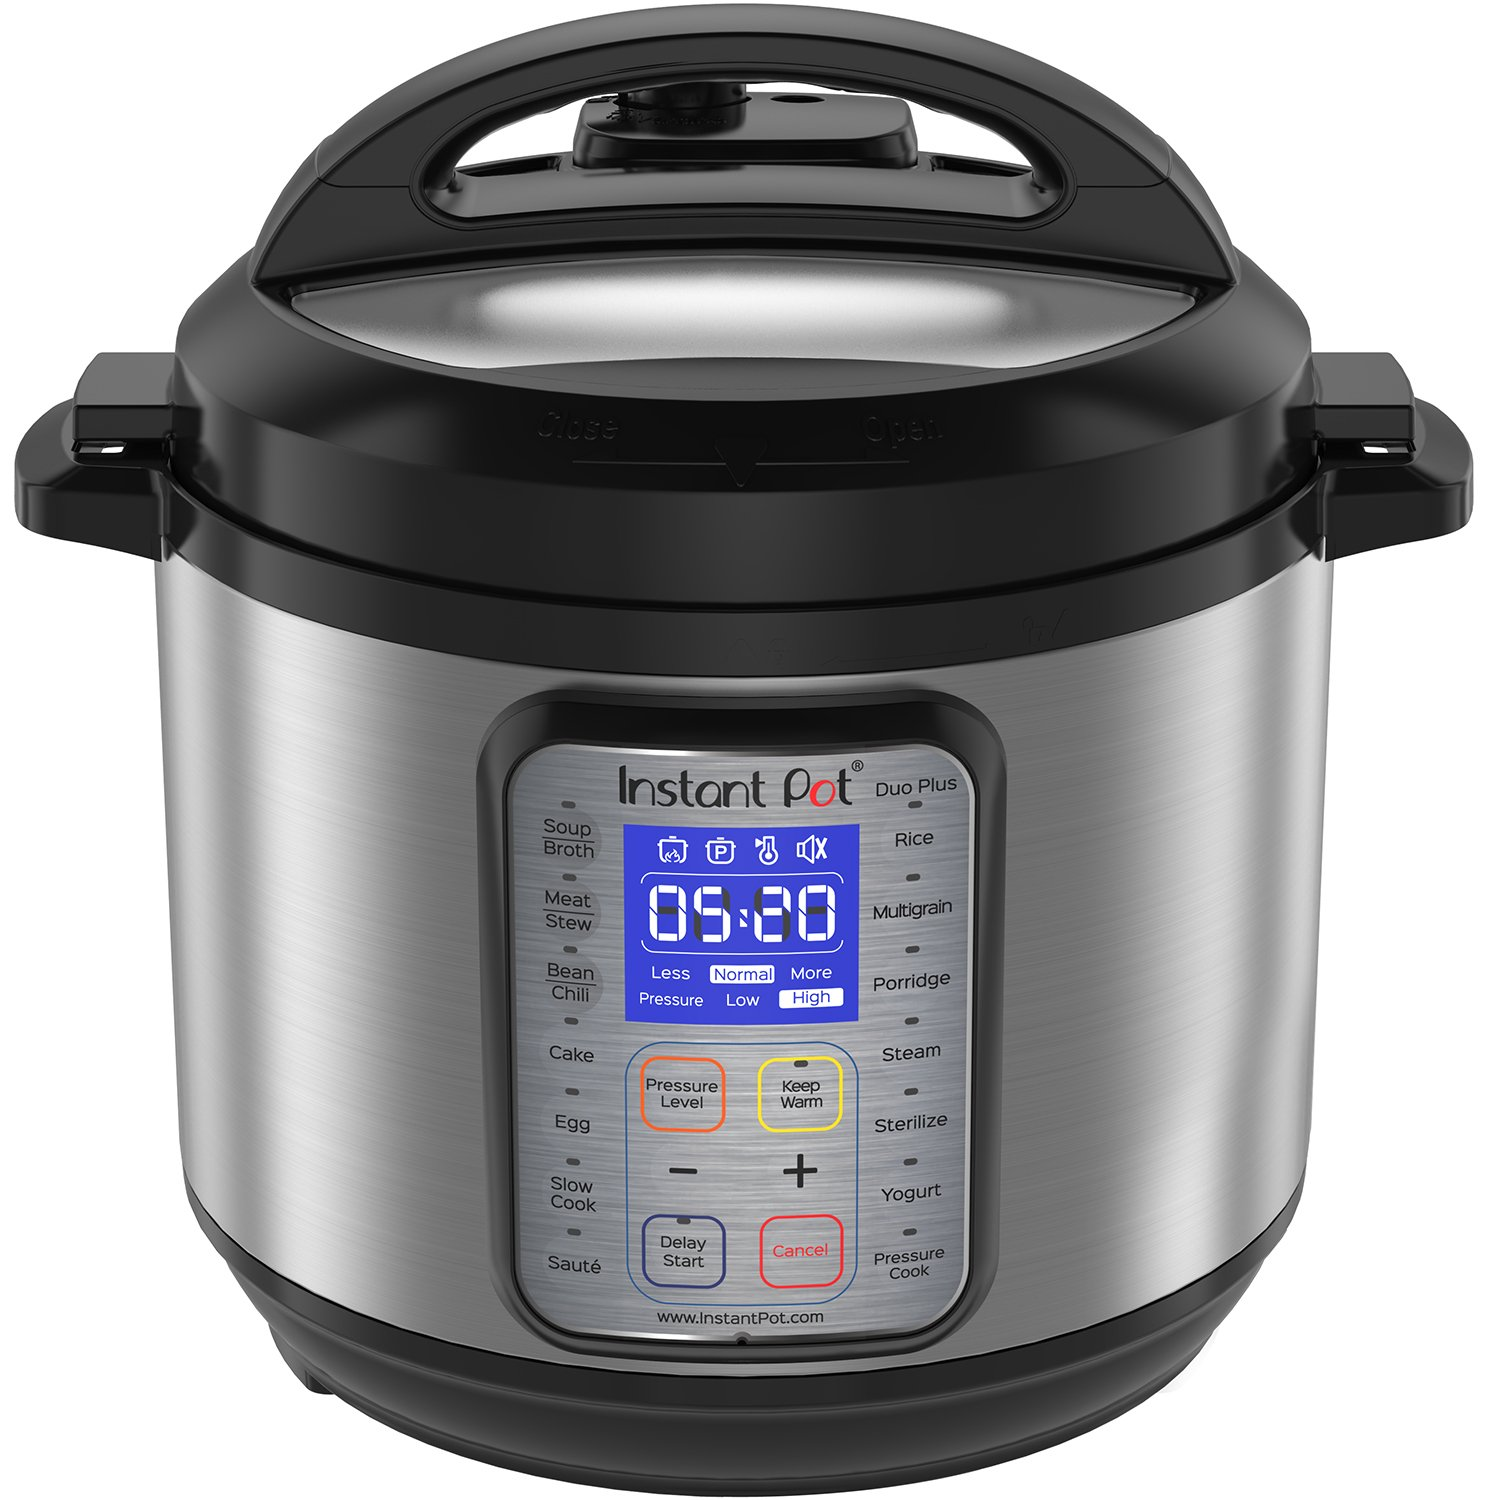 Instant Pot DUO Plus 60, 6 Qt9-in-1 Multi- Use Programmable Pressure Cooker, Slow Cooker, Rice Cooker, Yogurt Maker, Egg Cooker, Sauté, Steamer, Warmer, and Sterilizer